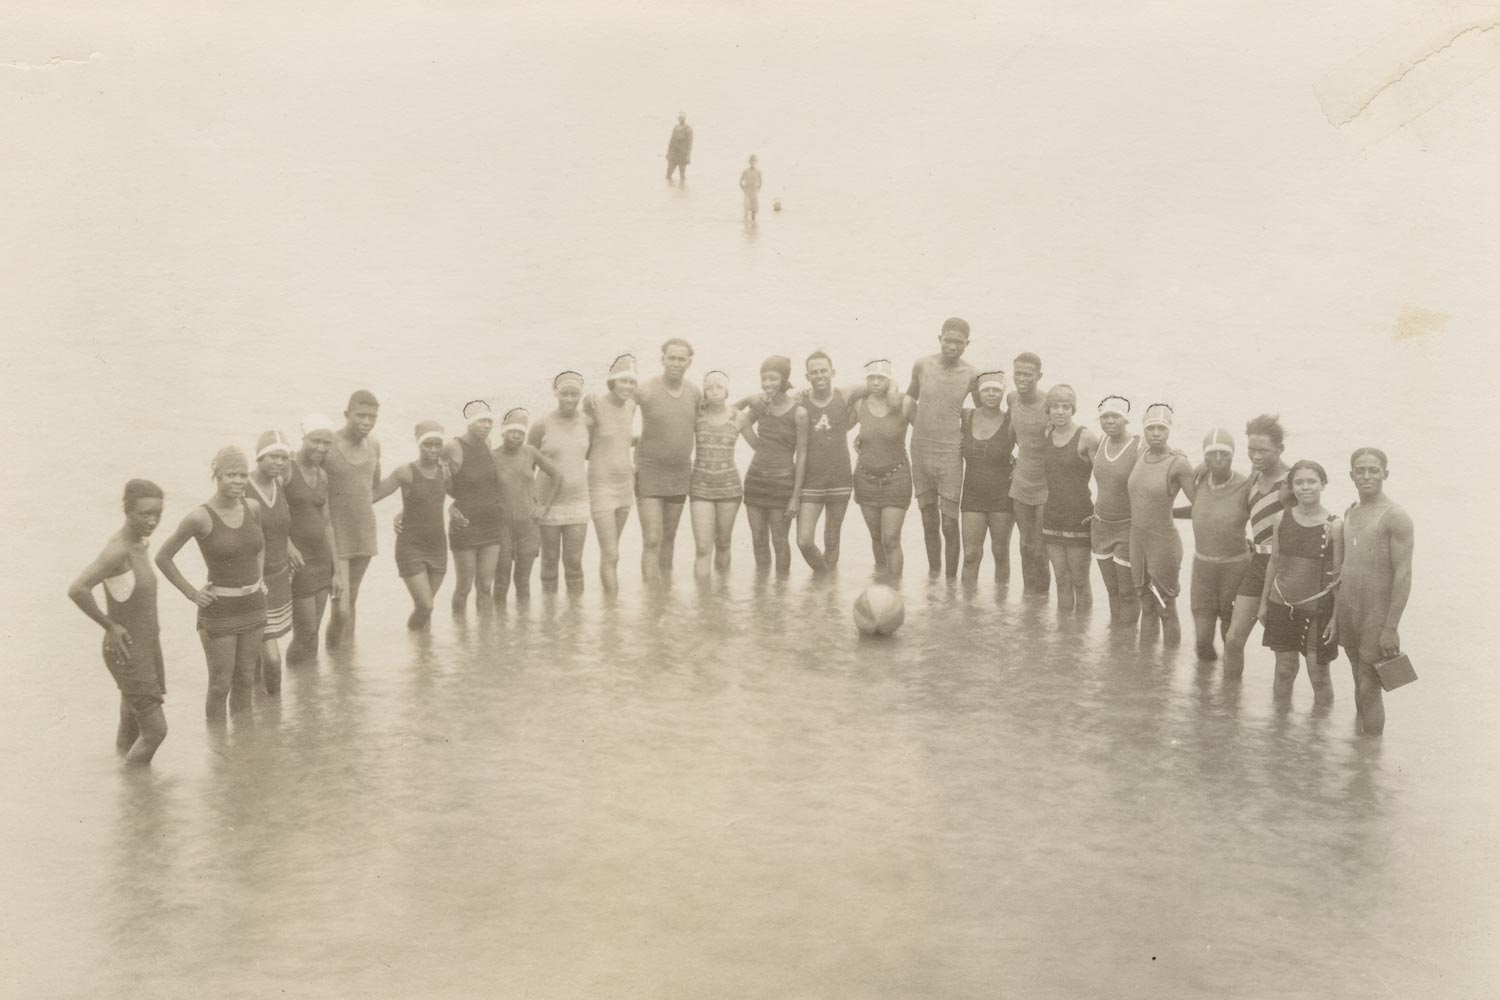 Visitors to Gulfside Assembly, an African-American religious resort in Waveland, Mississippi, bathing in the Gulf of Mexico in the 1920s. (Photographs and Prints Division, Schomburg Center for Research in Black Culture, New York Public Library, Astor, Lenox and Tilden Foundations)